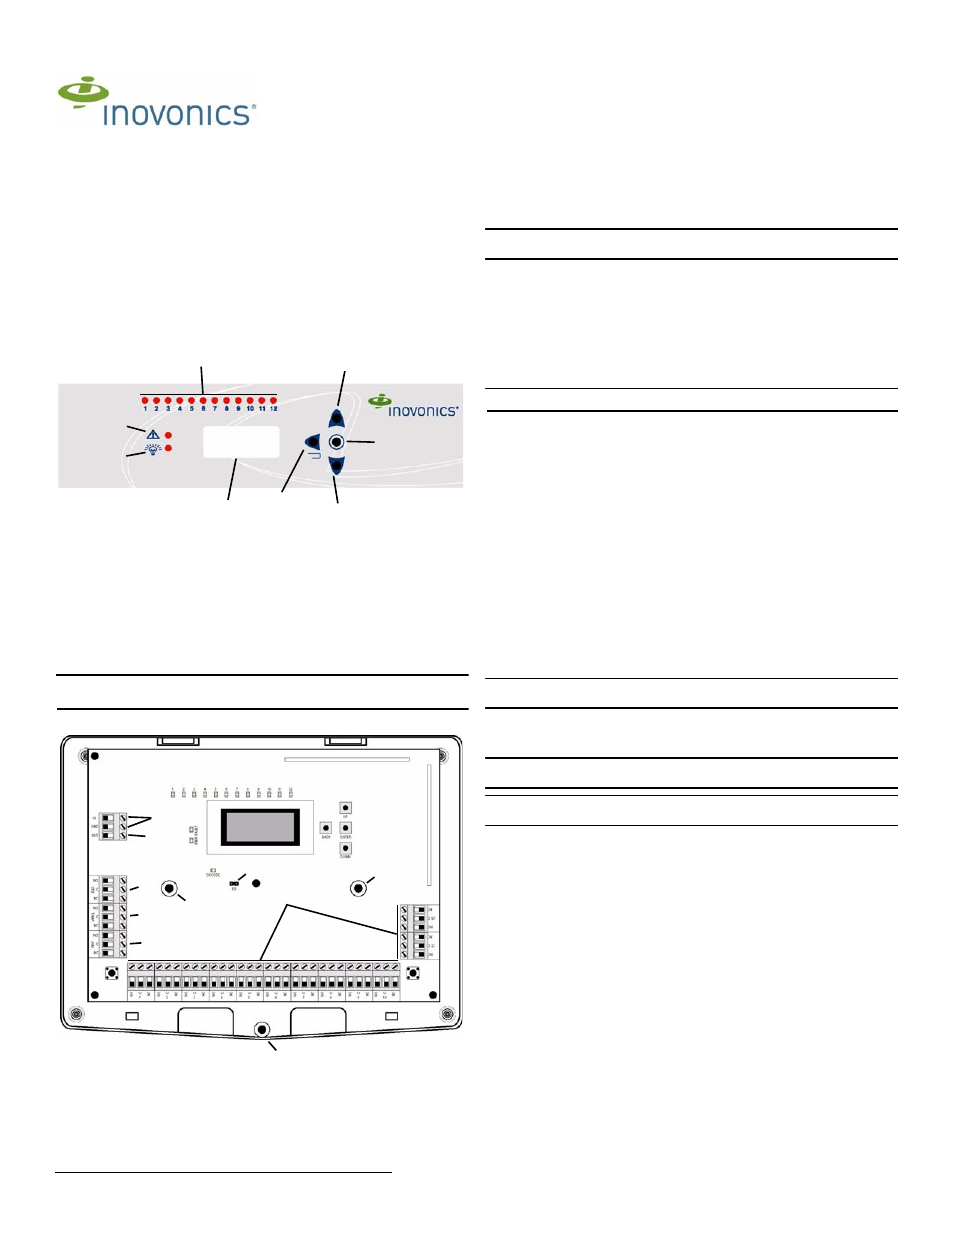 Inovonics EE4232MR User Manual | 4 pages on lighting diagrams, switch diagrams, led circuit diagrams, battery diagrams, friendship bracelet diagrams, motor diagrams, engine diagrams, transformer diagrams, troubleshooting diagrams, pinout diagrams, sincgars radio configurations diagrams, electrical diagrams, gmc fuse box diagrams, smart car diagrams, internet of things diagrams, hvac diagrams, electronic circuit diagrams, honda motorcycle repair diagrams, series and parallel circuits diagrams, snatch block diagrams,